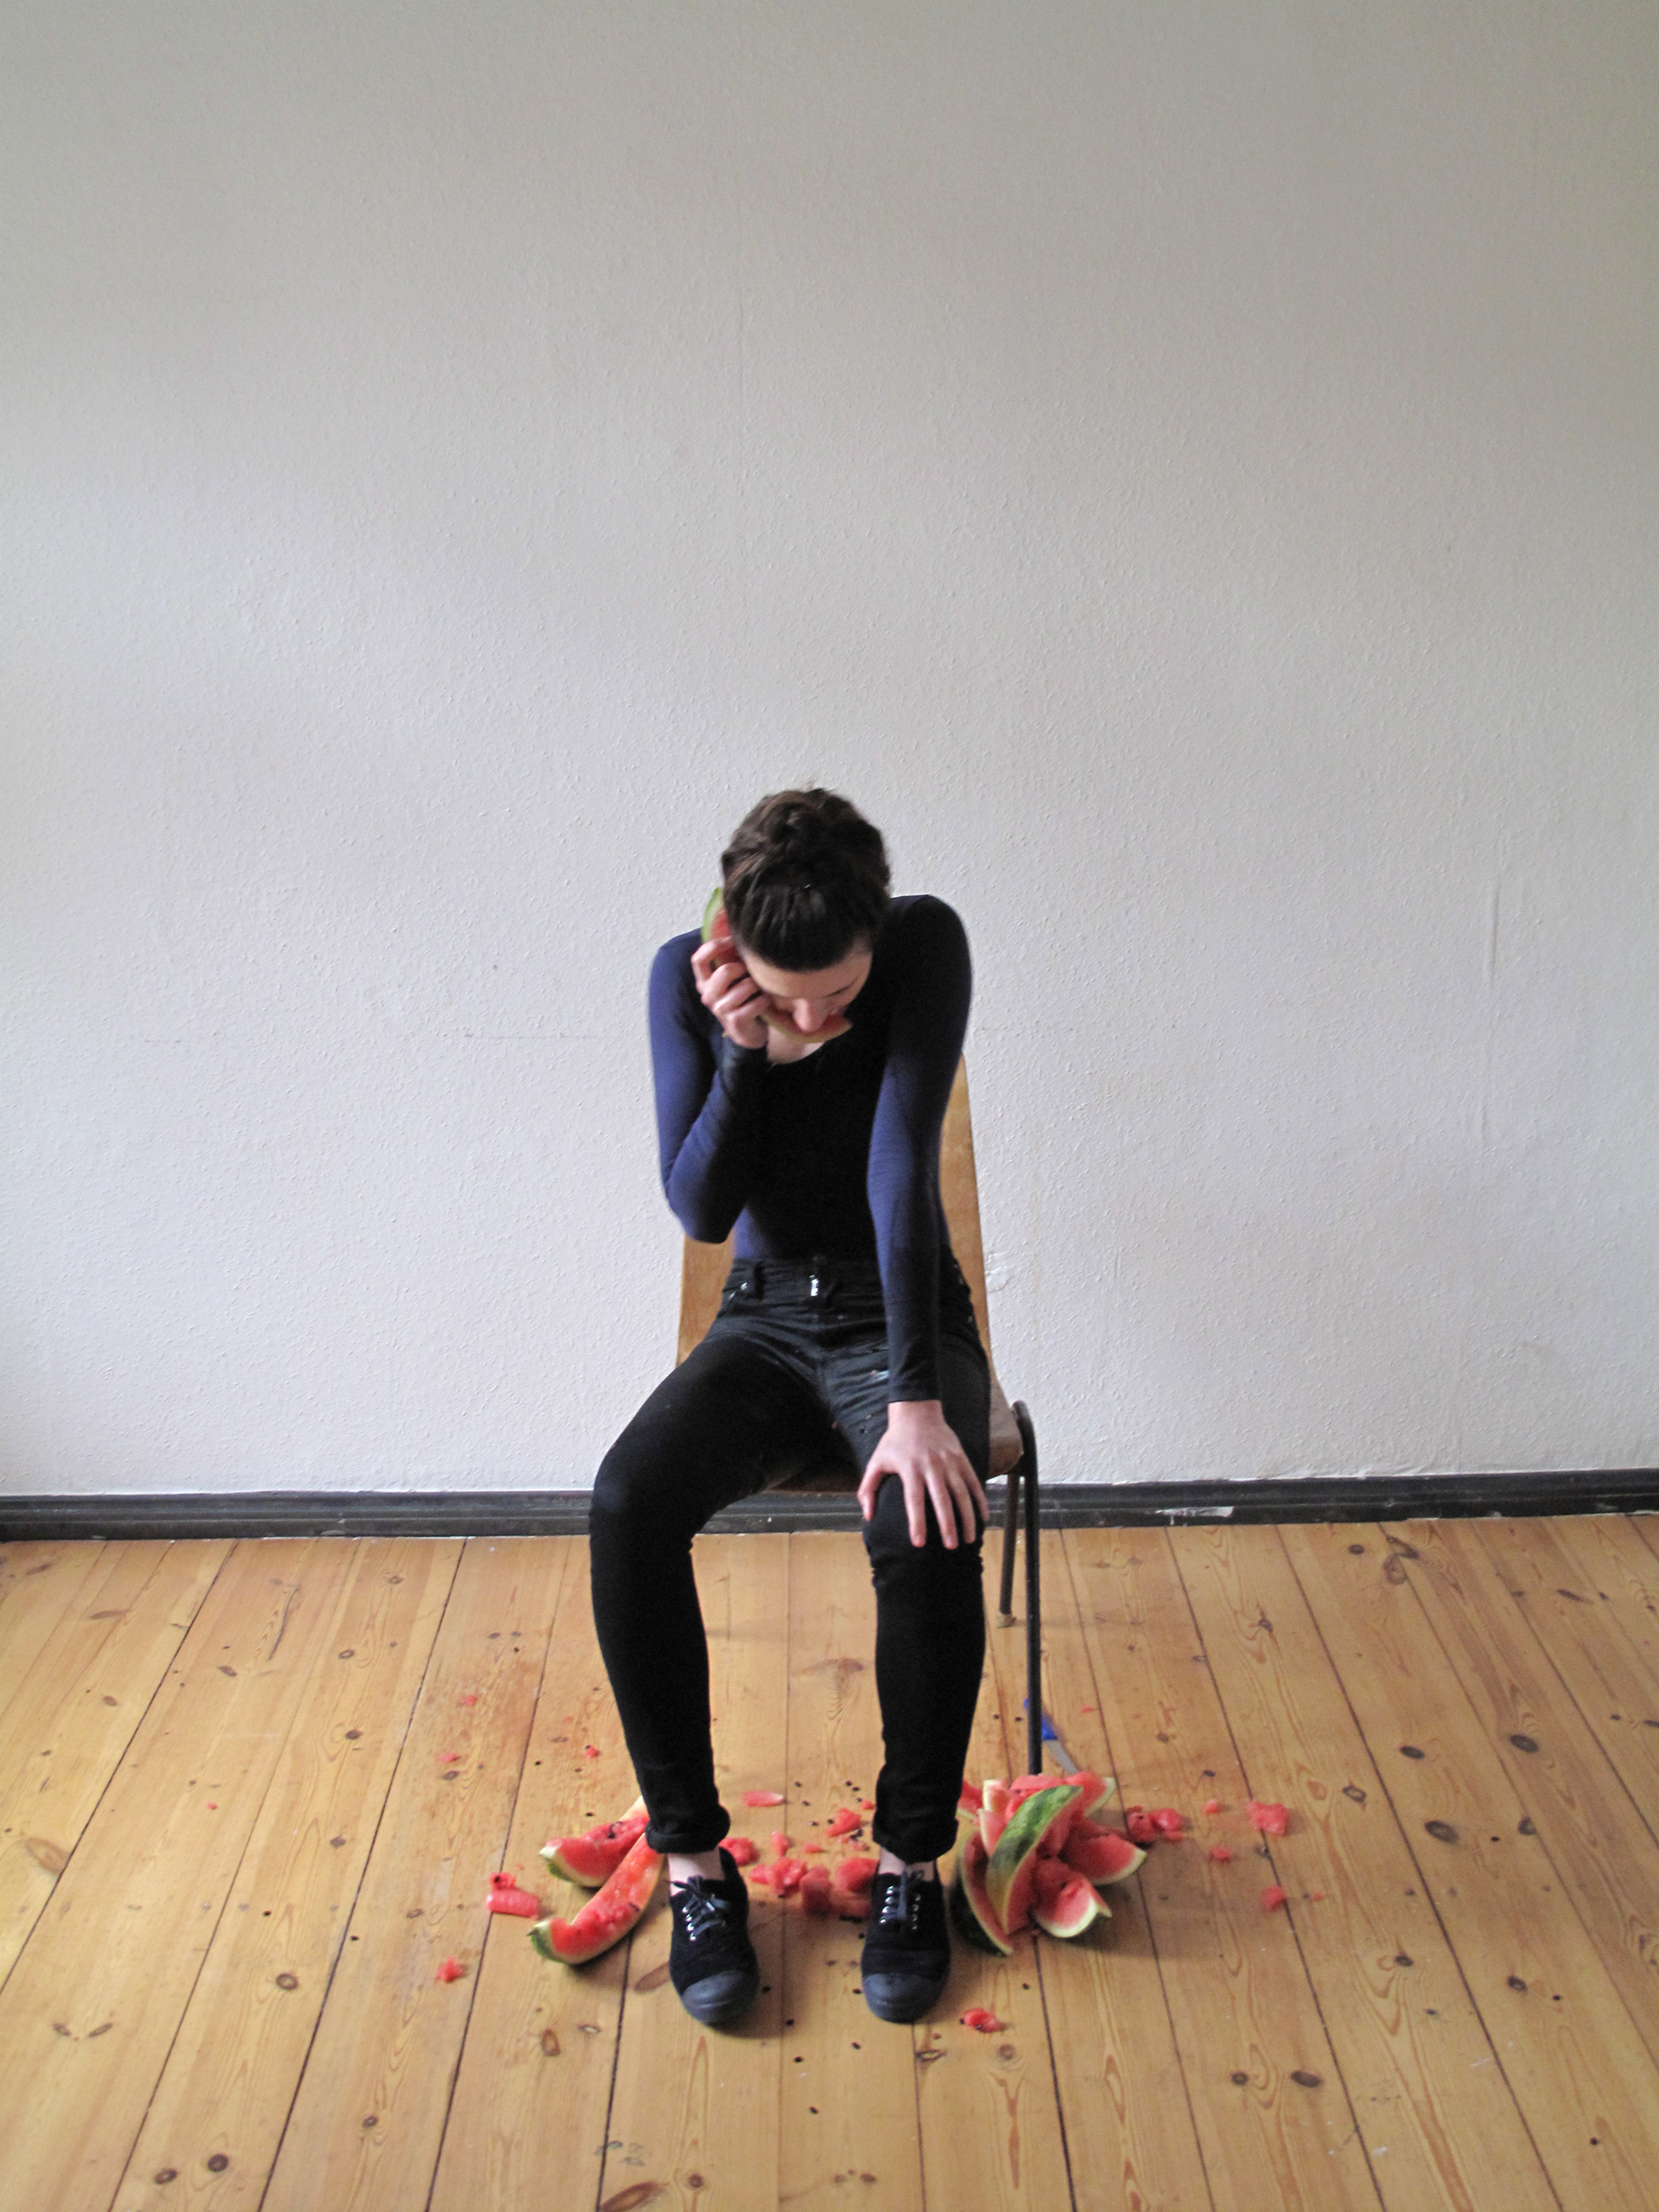 Hear This, 2012  Single-channel digital video, colour, sound  8mins 5 seconds.  Lauren Brincat's video  Hear This  depicts the artist alone in her studio during a residency in Berlin, speaking on a telephone to her mother back in Australia. The telephone is made from watermelon wedges that the artist slices and consumes as she speaks, literally eating her own words in a forlorn yet comical representation of homesickness. As the video progresses the watermelon soaks Brincat's clothes and dirties her hair and face, creating a disquieting and awkward performance.  Sound plays a significant role in  Hear This , as in many of the artist's works. The soundtrack acts as an emotive device, drawing on both personal and cultural recollections. Unassuming noises such as the cutting of a slice of melon, or a seed falling onto the wooden floor, take on greater importance in the video, emphasising both the solitude of the figure and the intimacy of the performance.